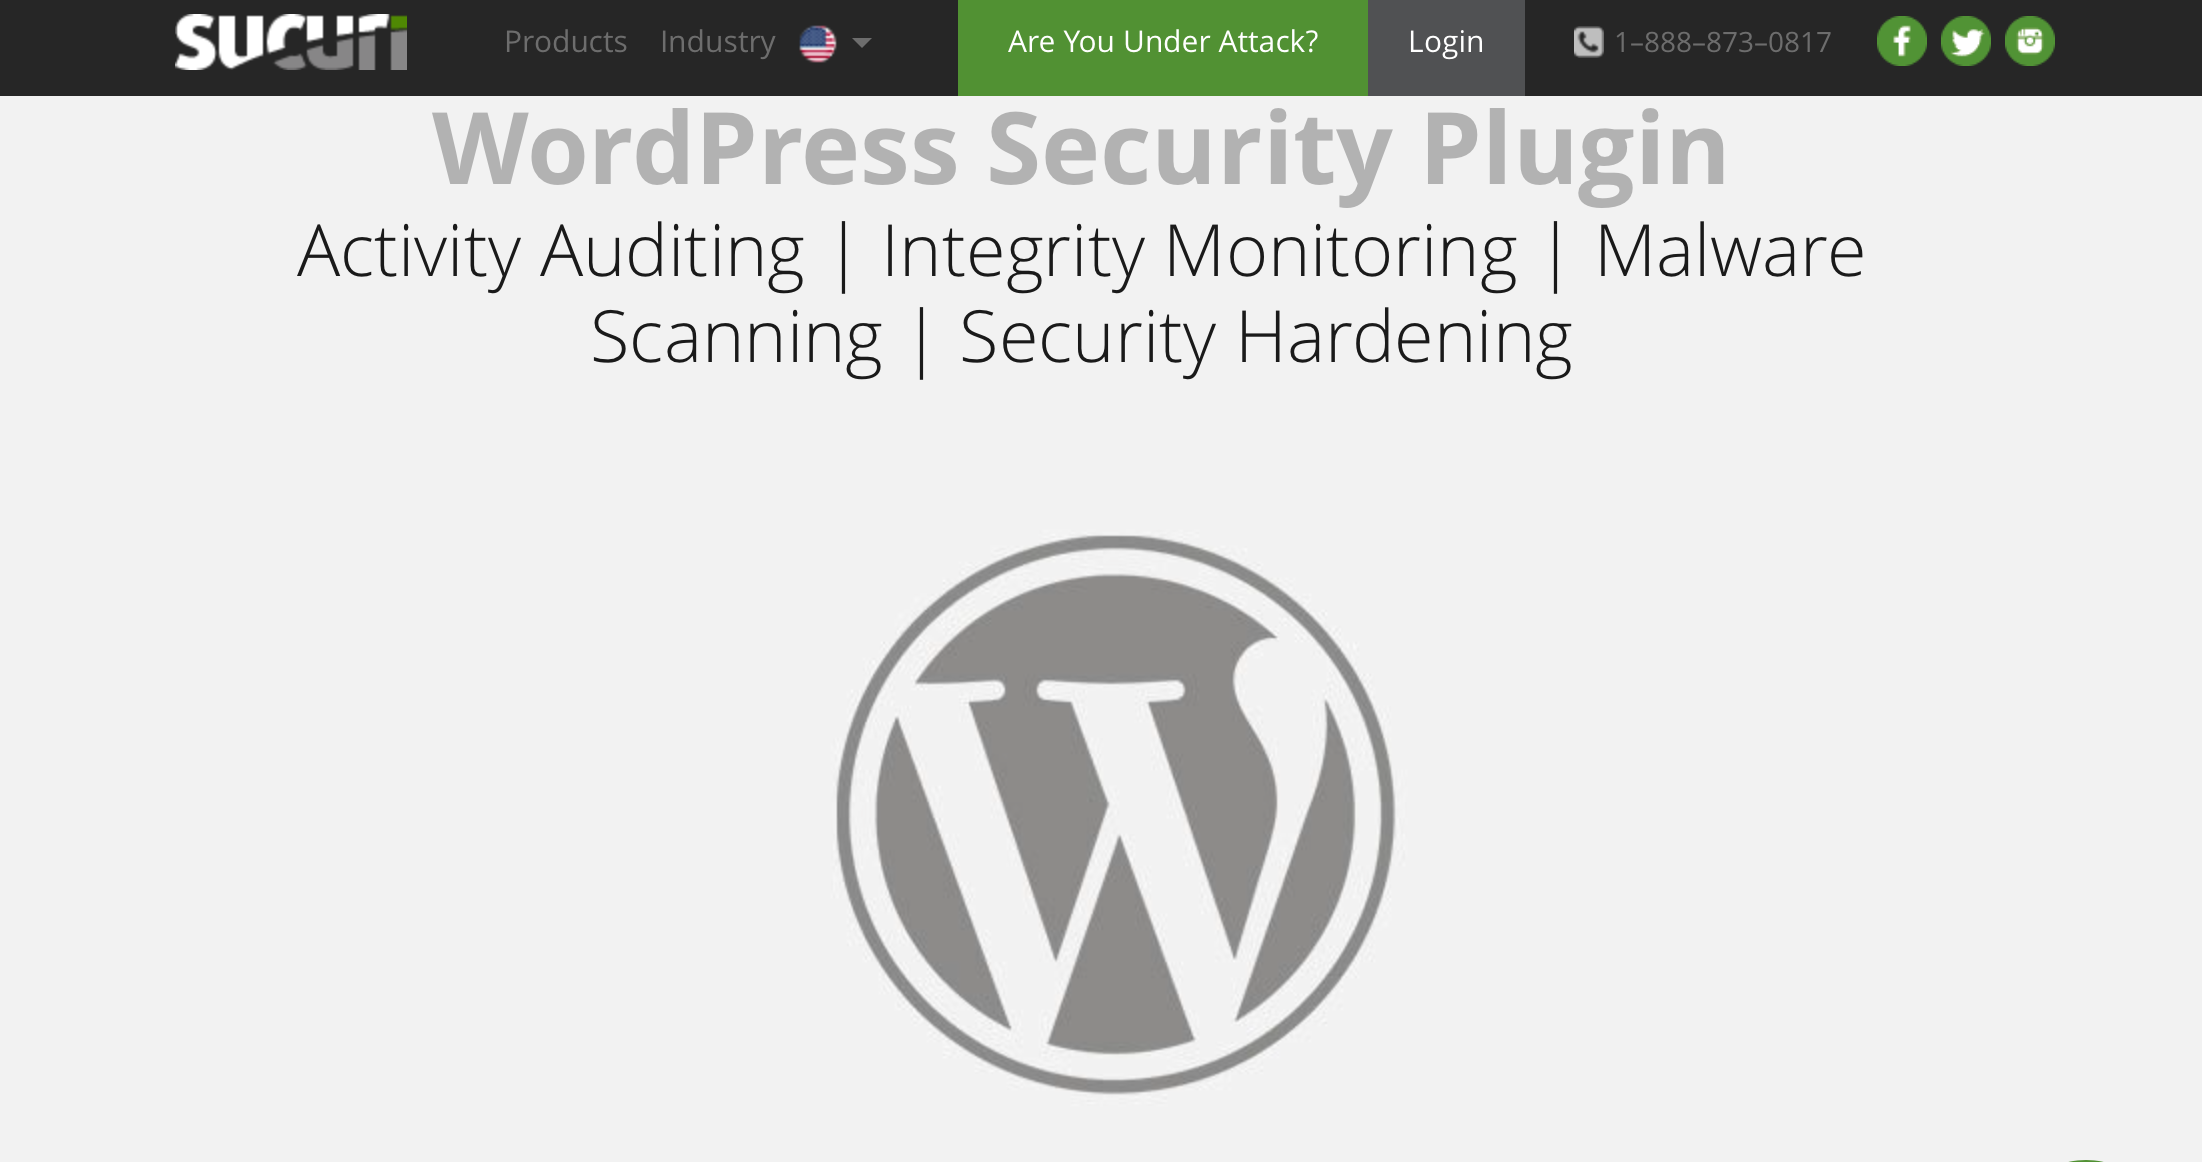 image of Sucuri webpage for wp security plugin